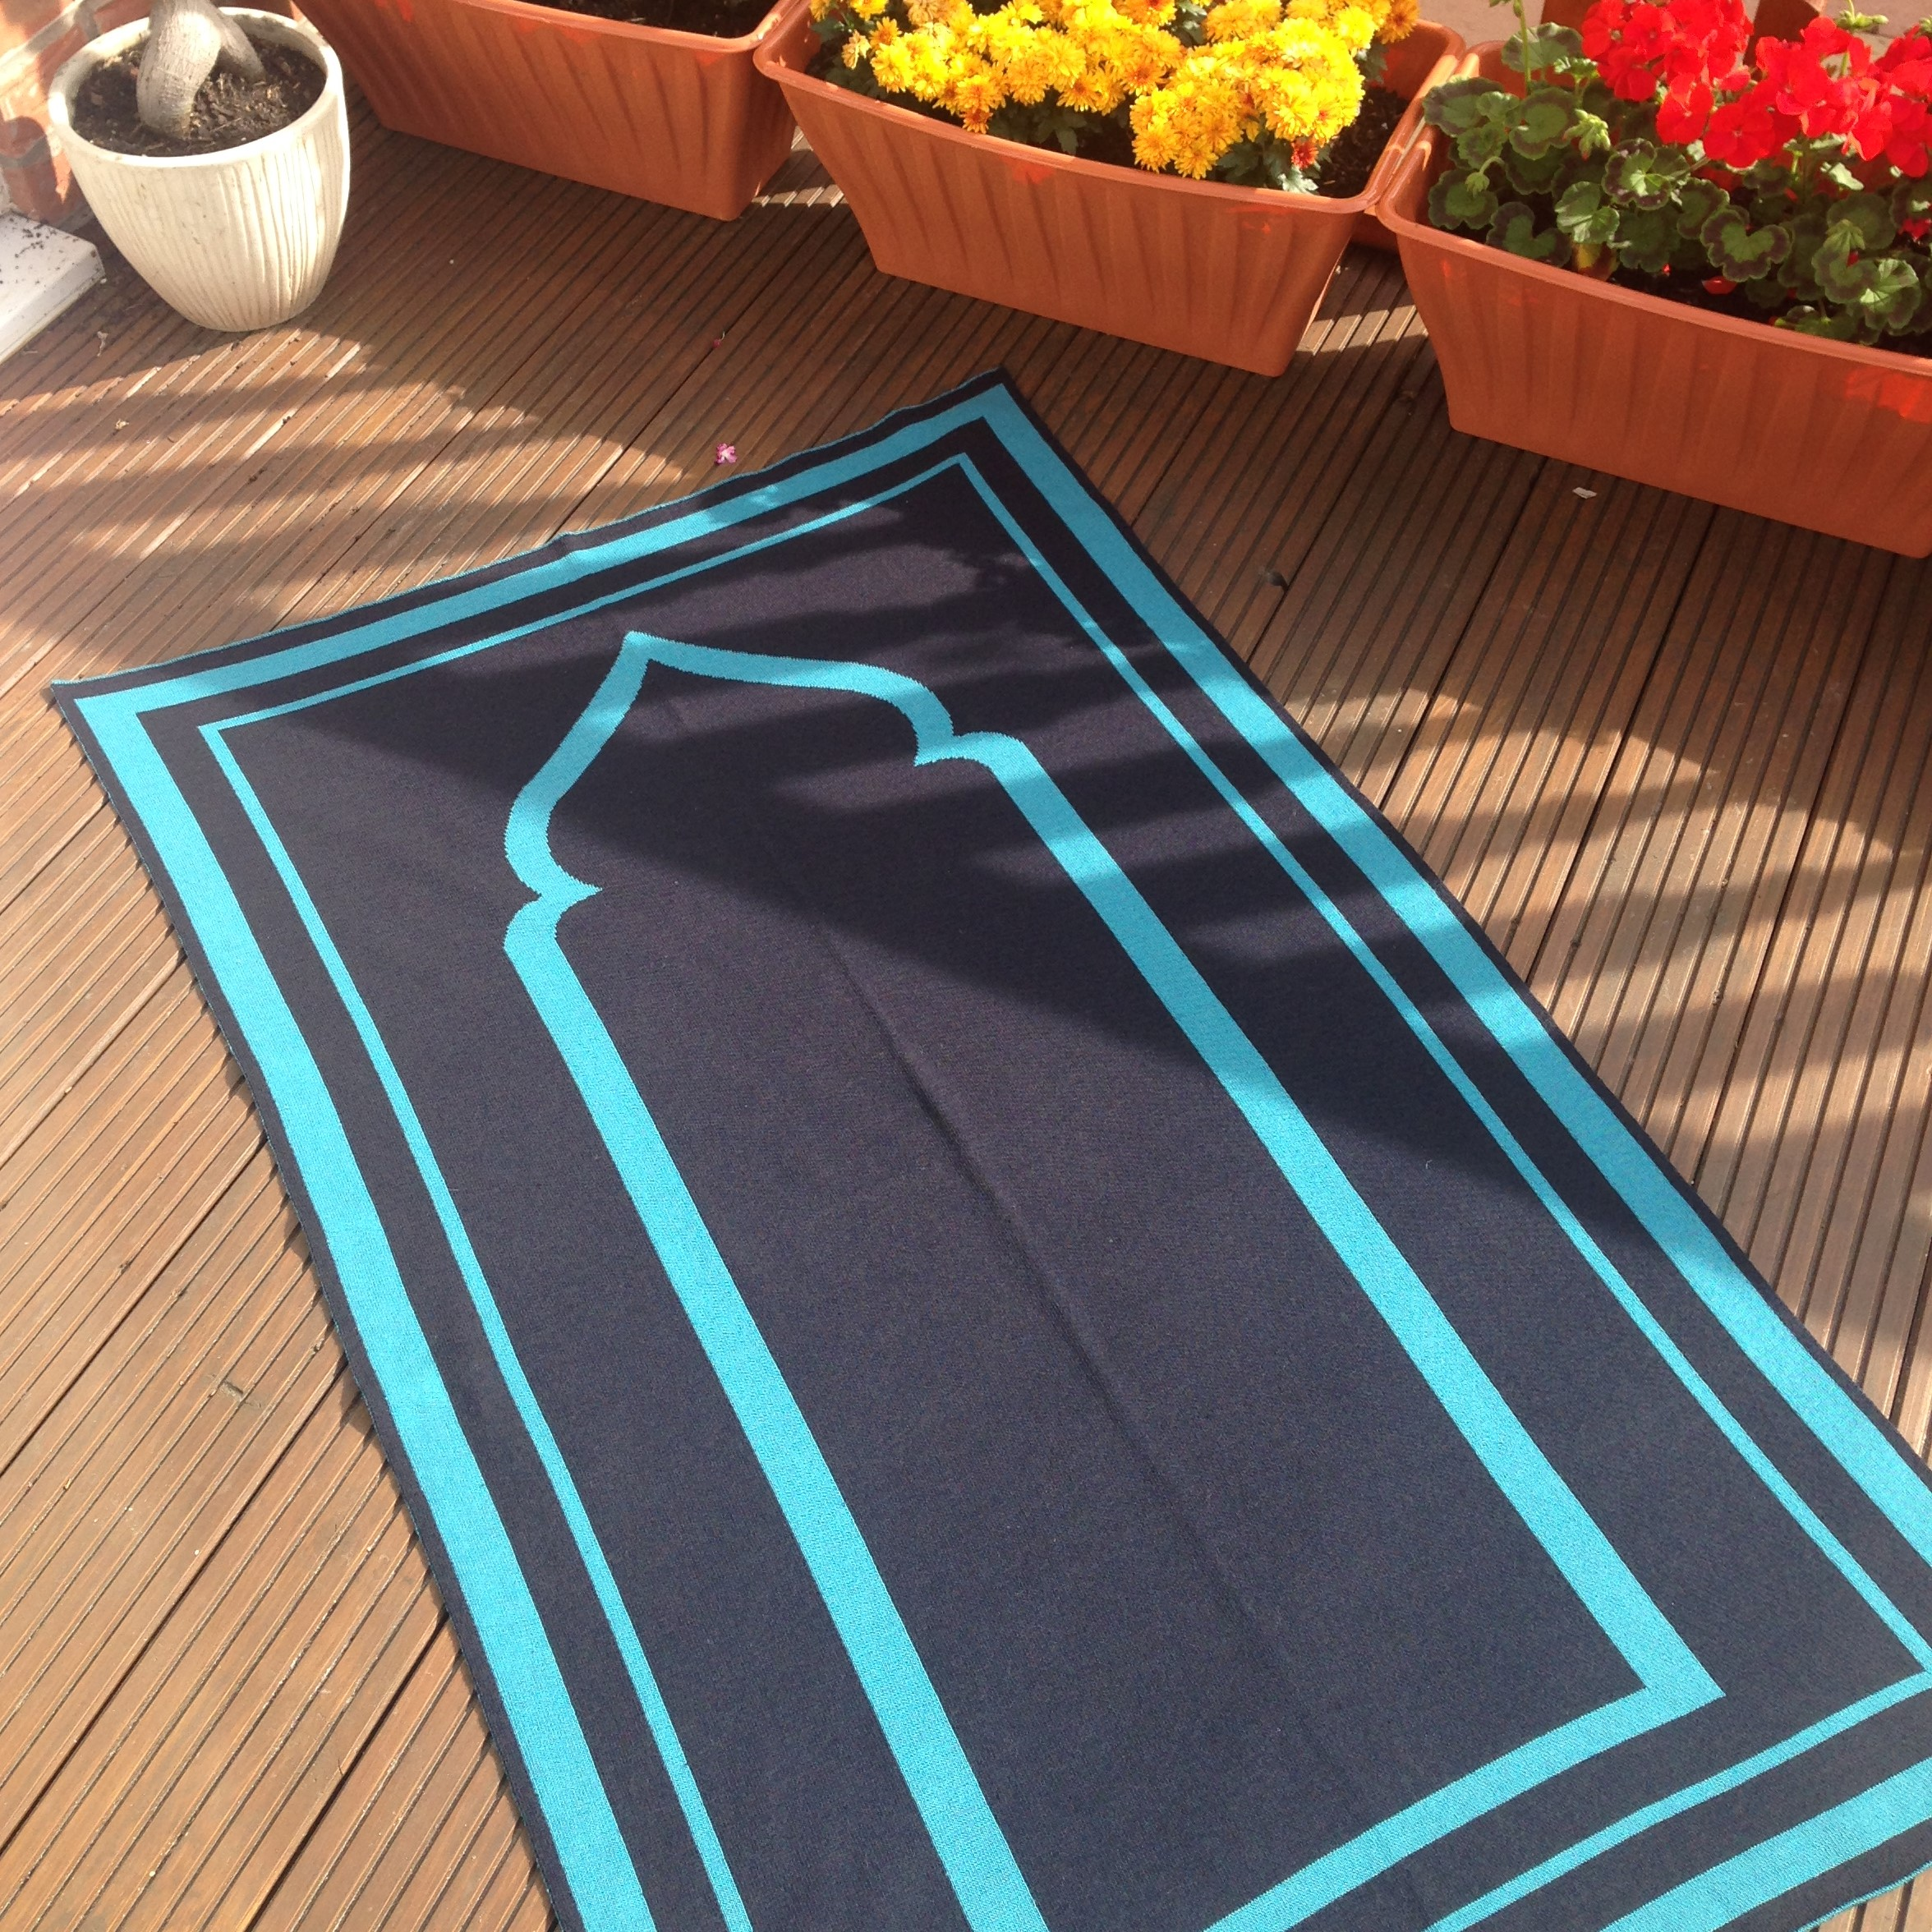 Padded Prayer Rug Home Decor